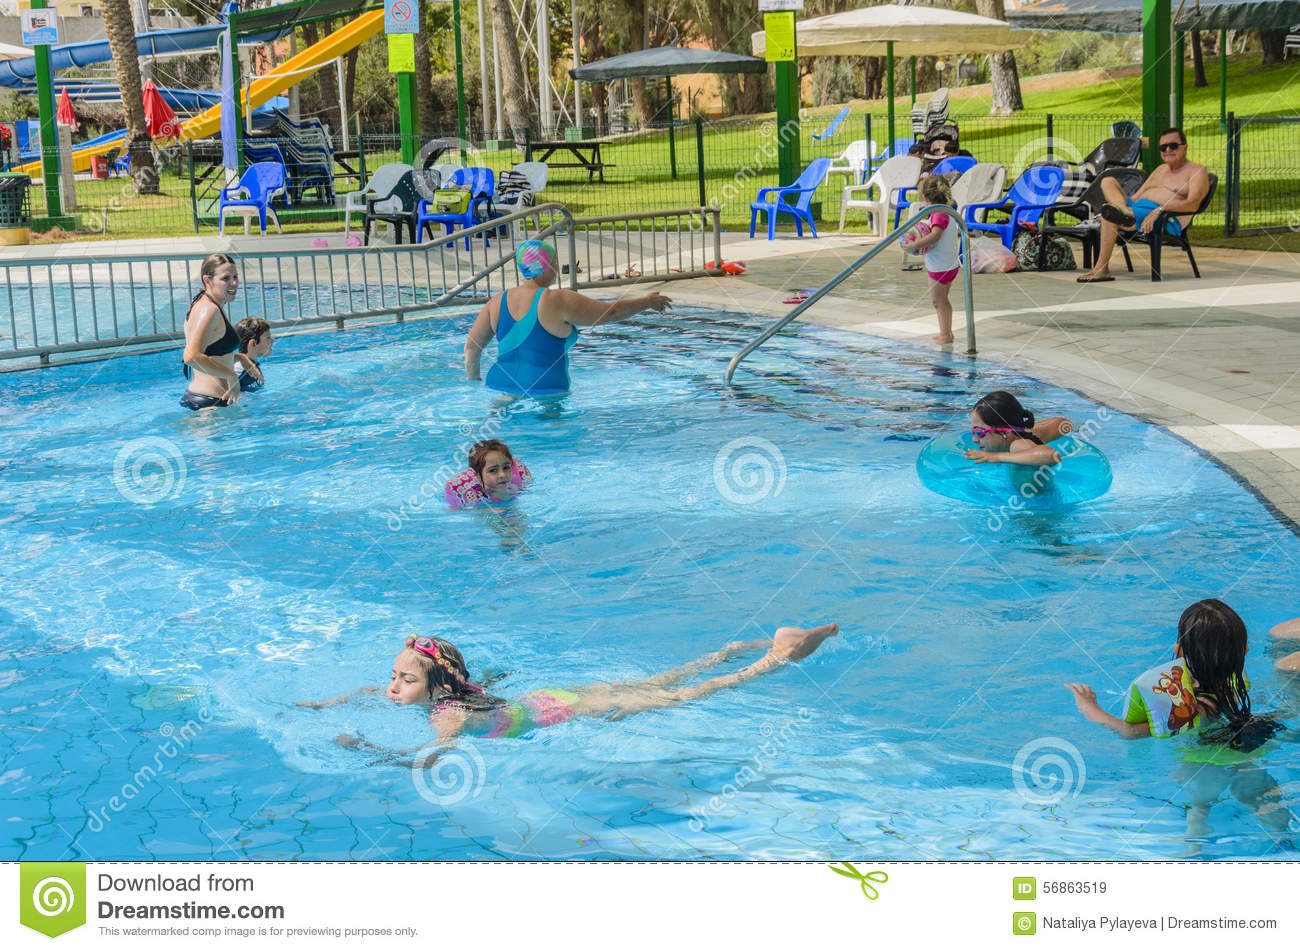 Omer Israel June 27 People Swim In The Outdoor Pool